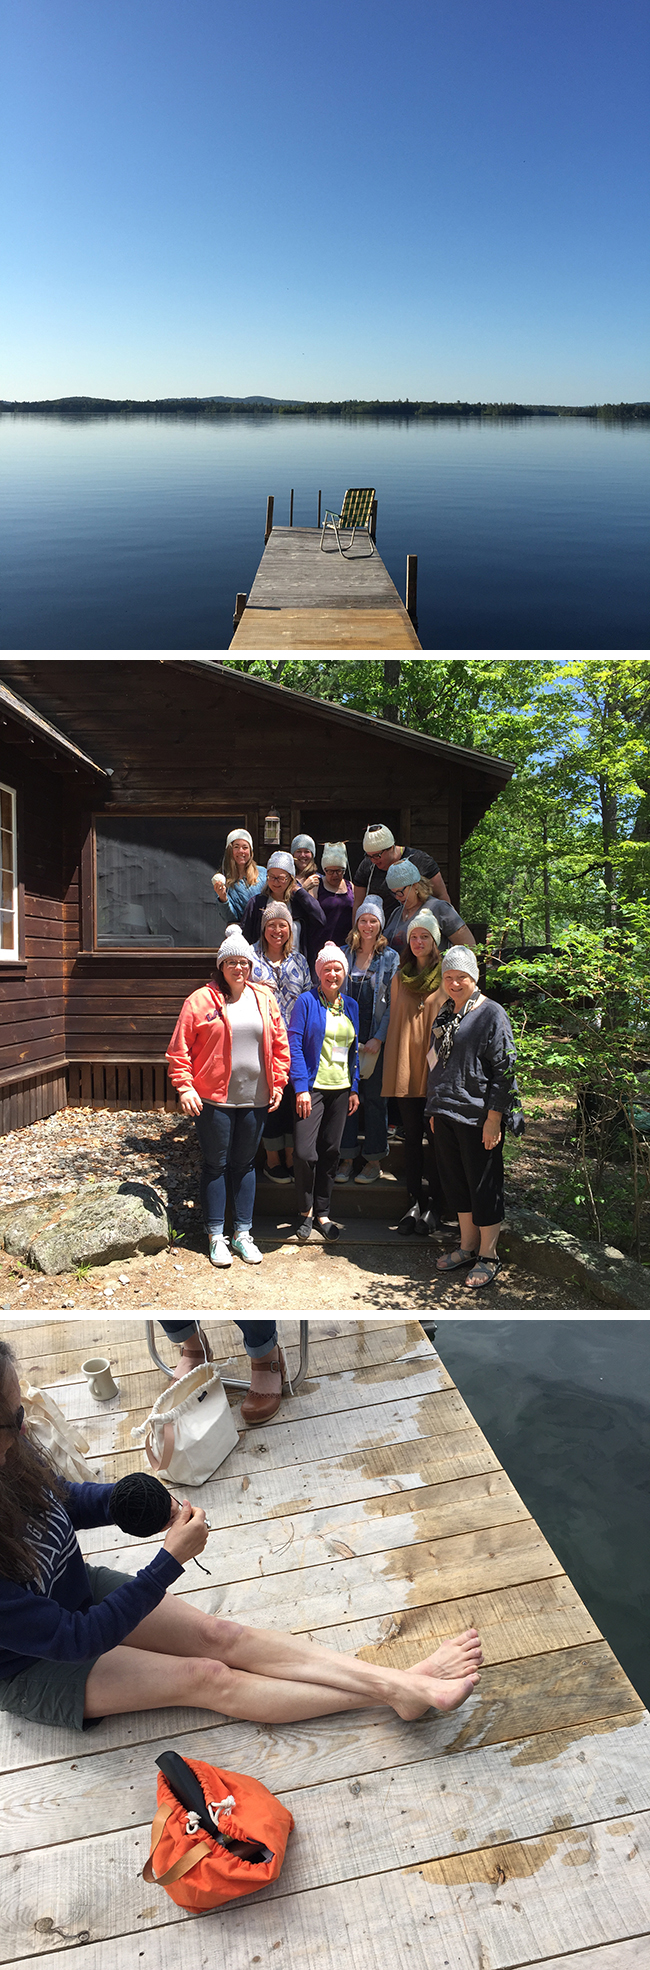 Squam 2017: Reflections and outfits